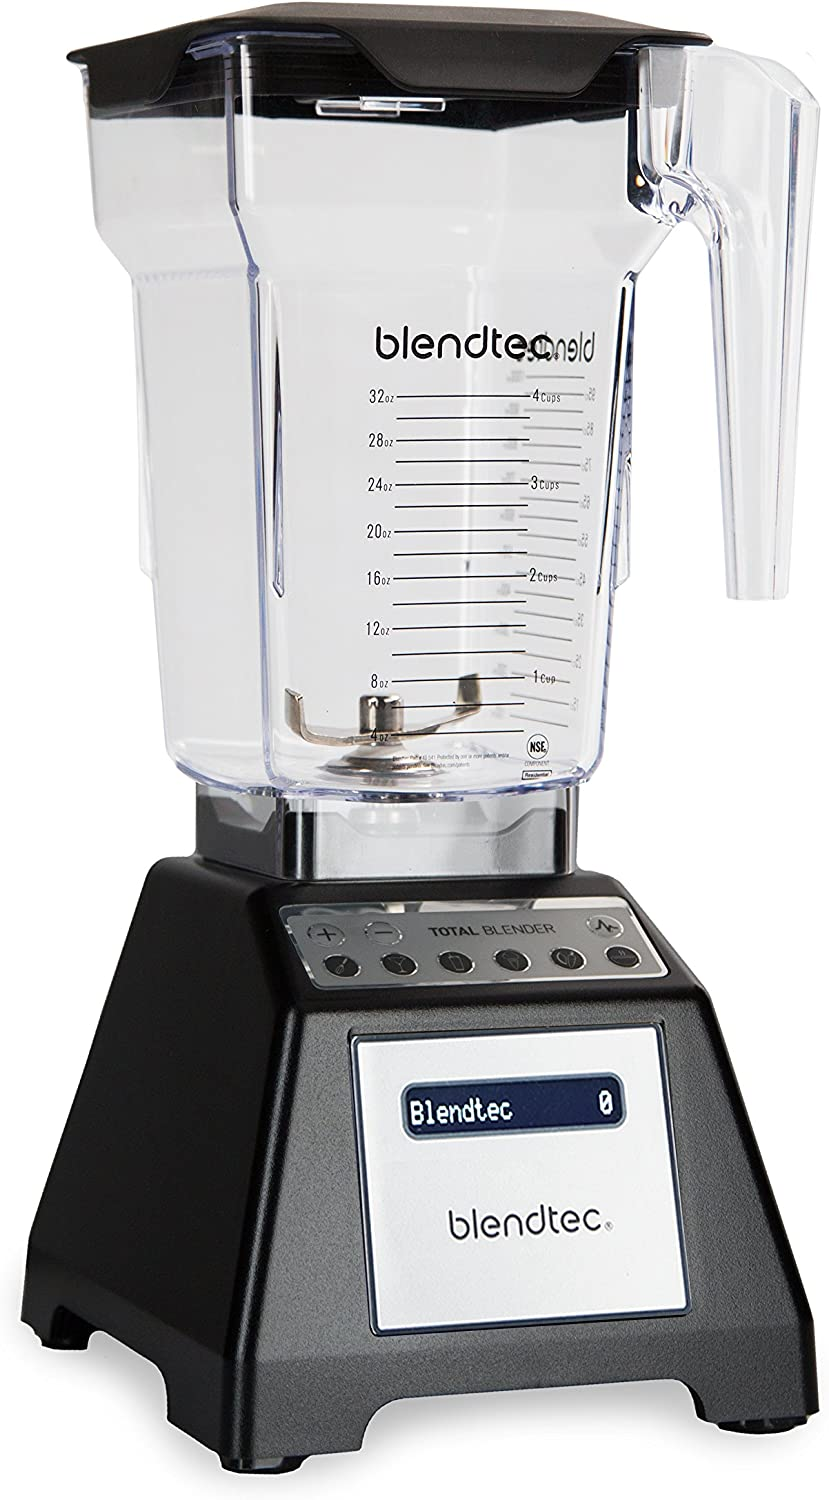 Blendtec Total Classic Original Blender with FourSide Jar 75oz volume 32 oz Wet Dry Fillable , Professional-Grade Power, 6 Pre-programmed Cycles, 10-speeds, Black